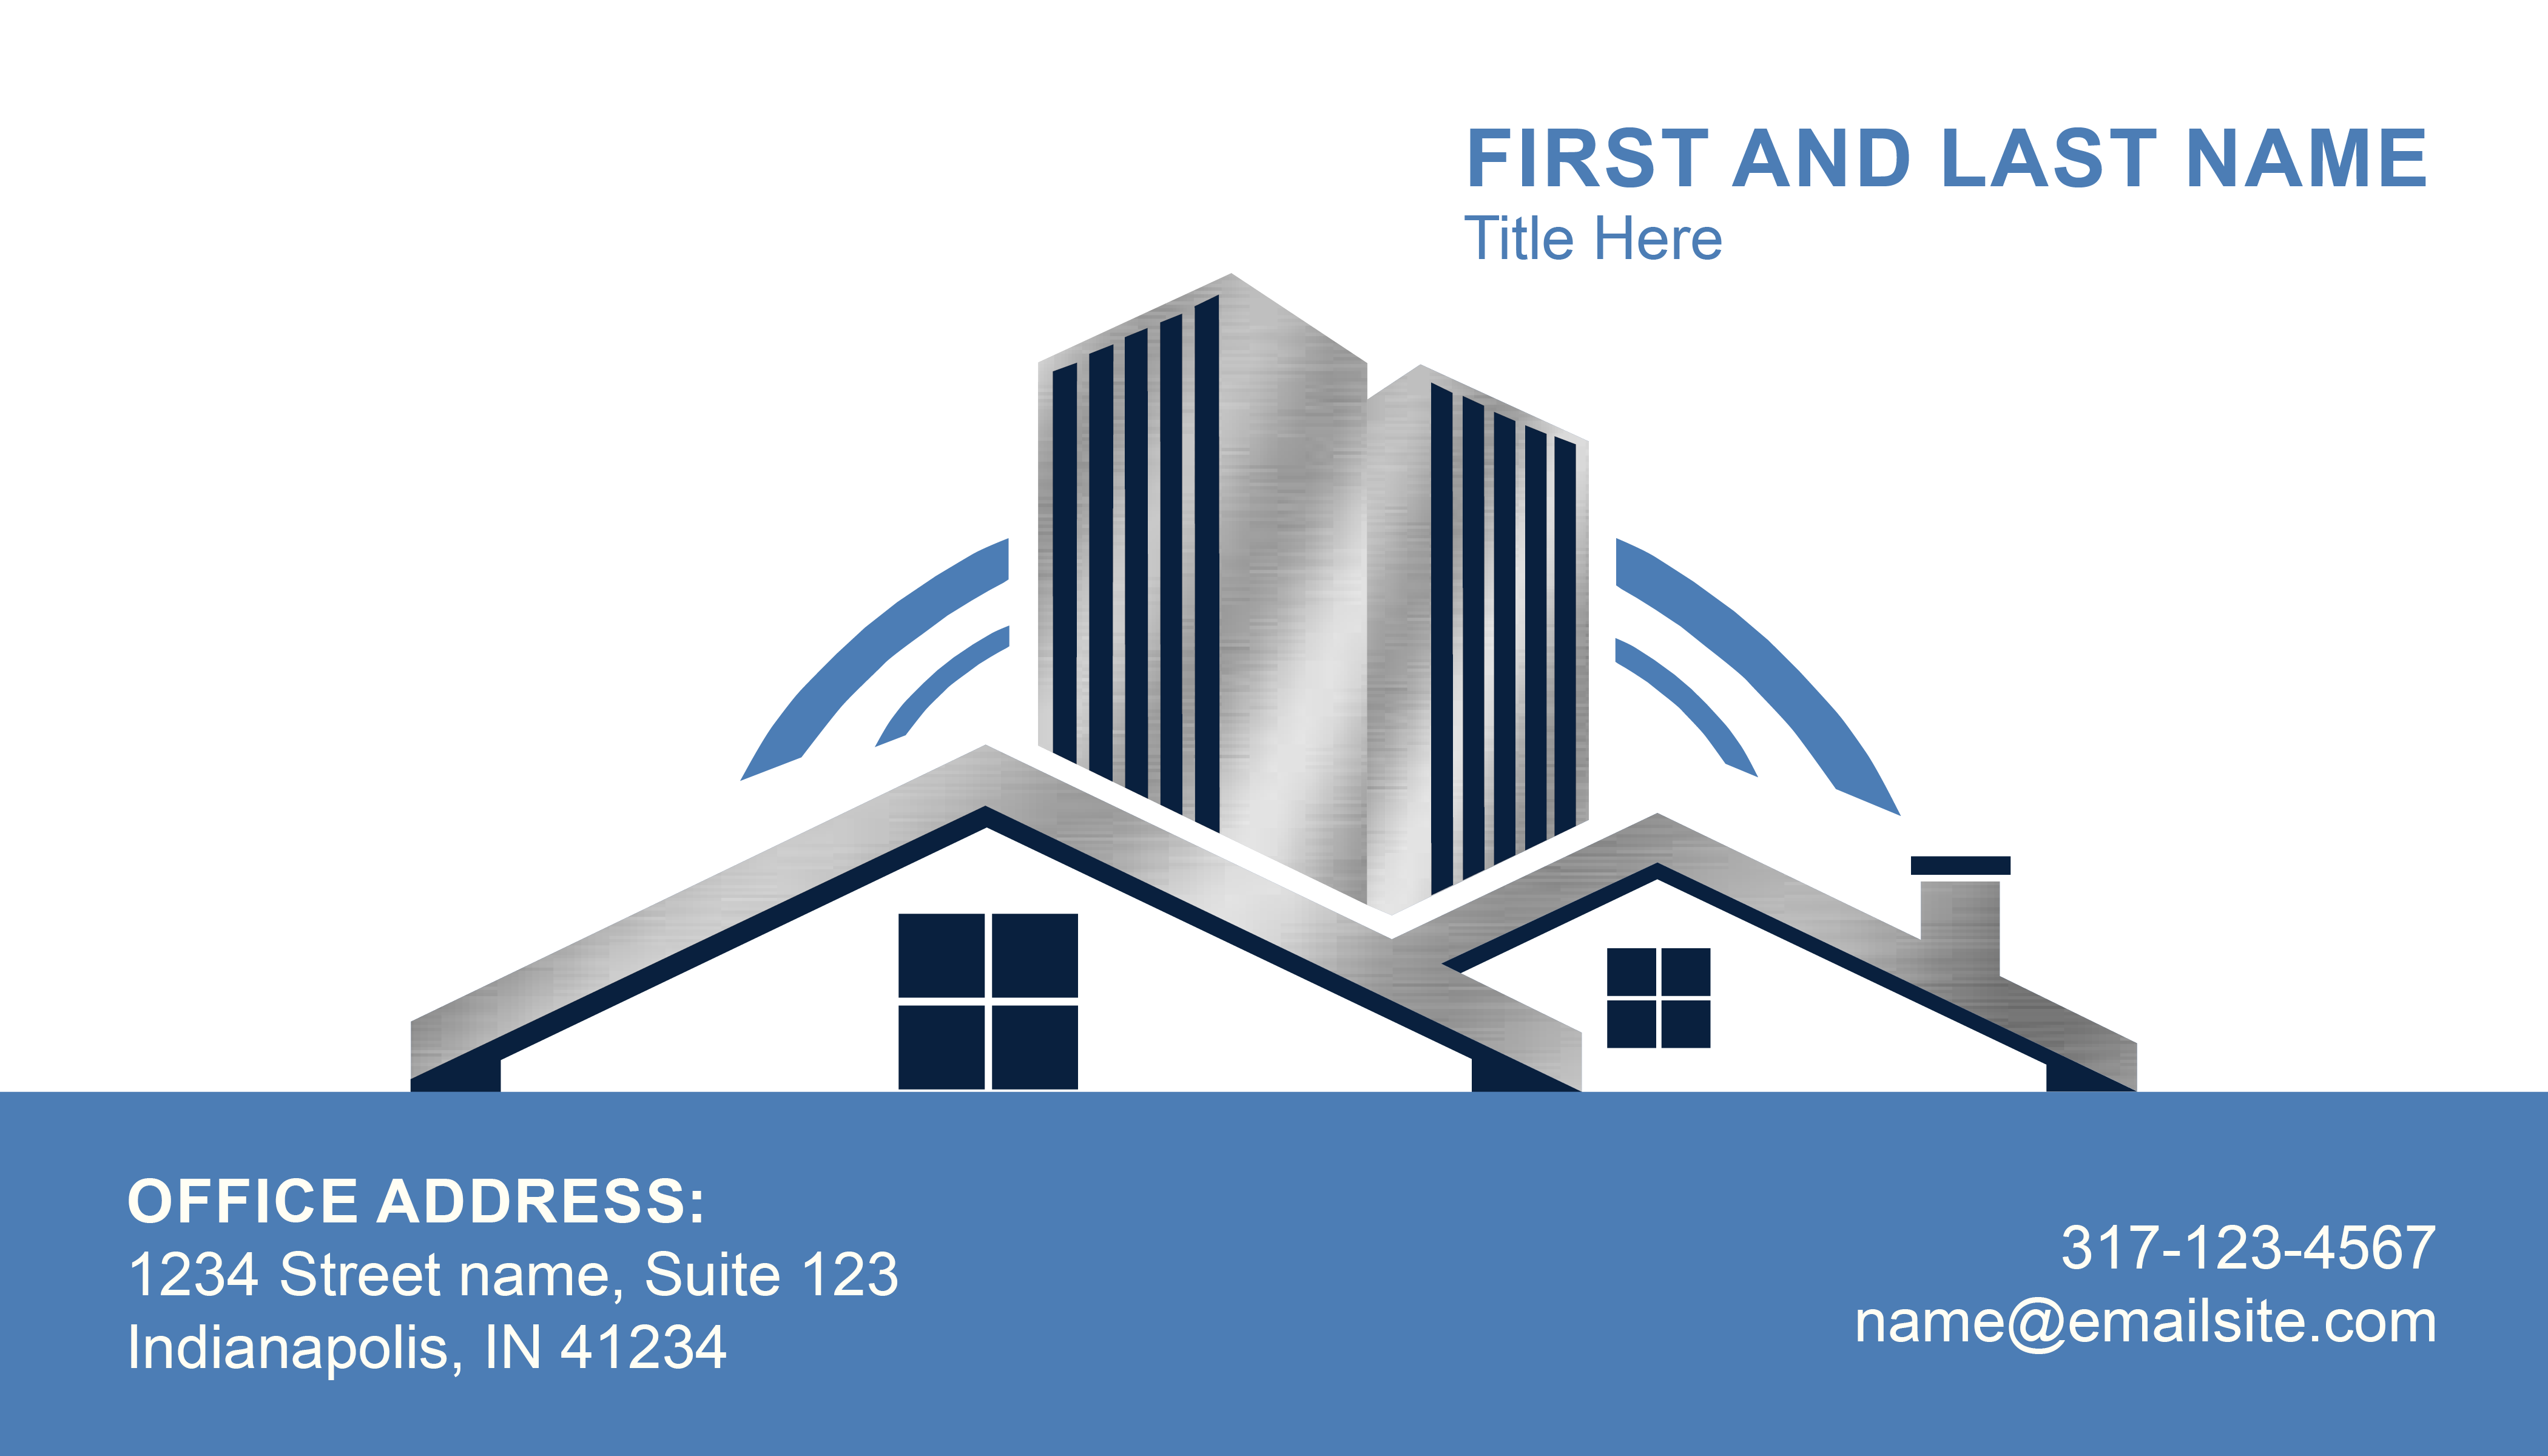 FAMC Real Estate Group_Businesss Card_Final_3.5x2inches